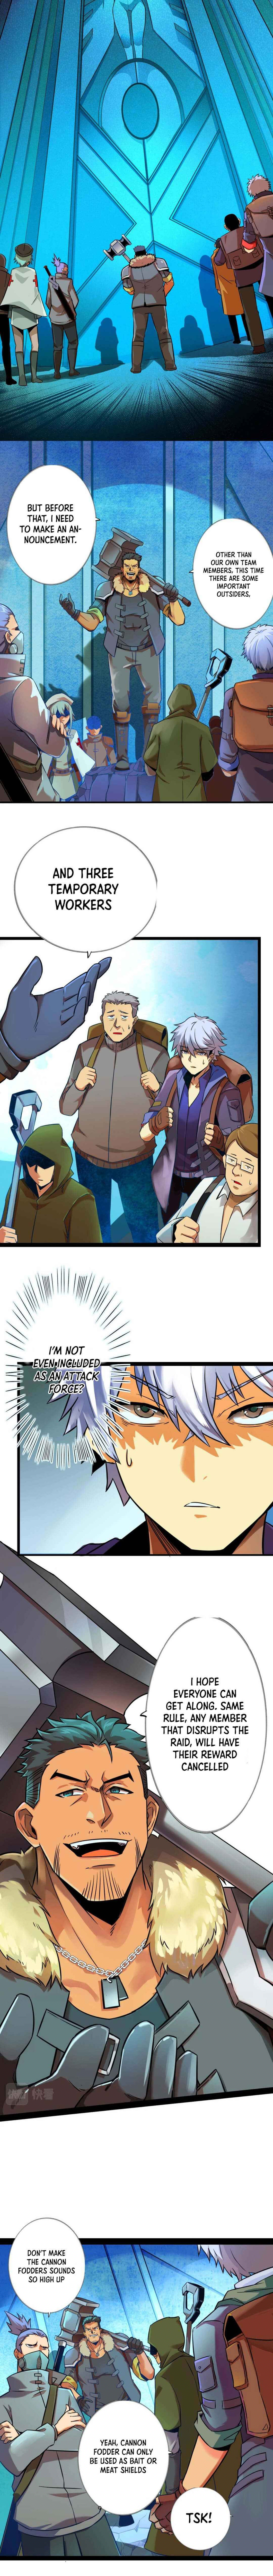 Unable To Become The Main Force - chapter 1-eng-li